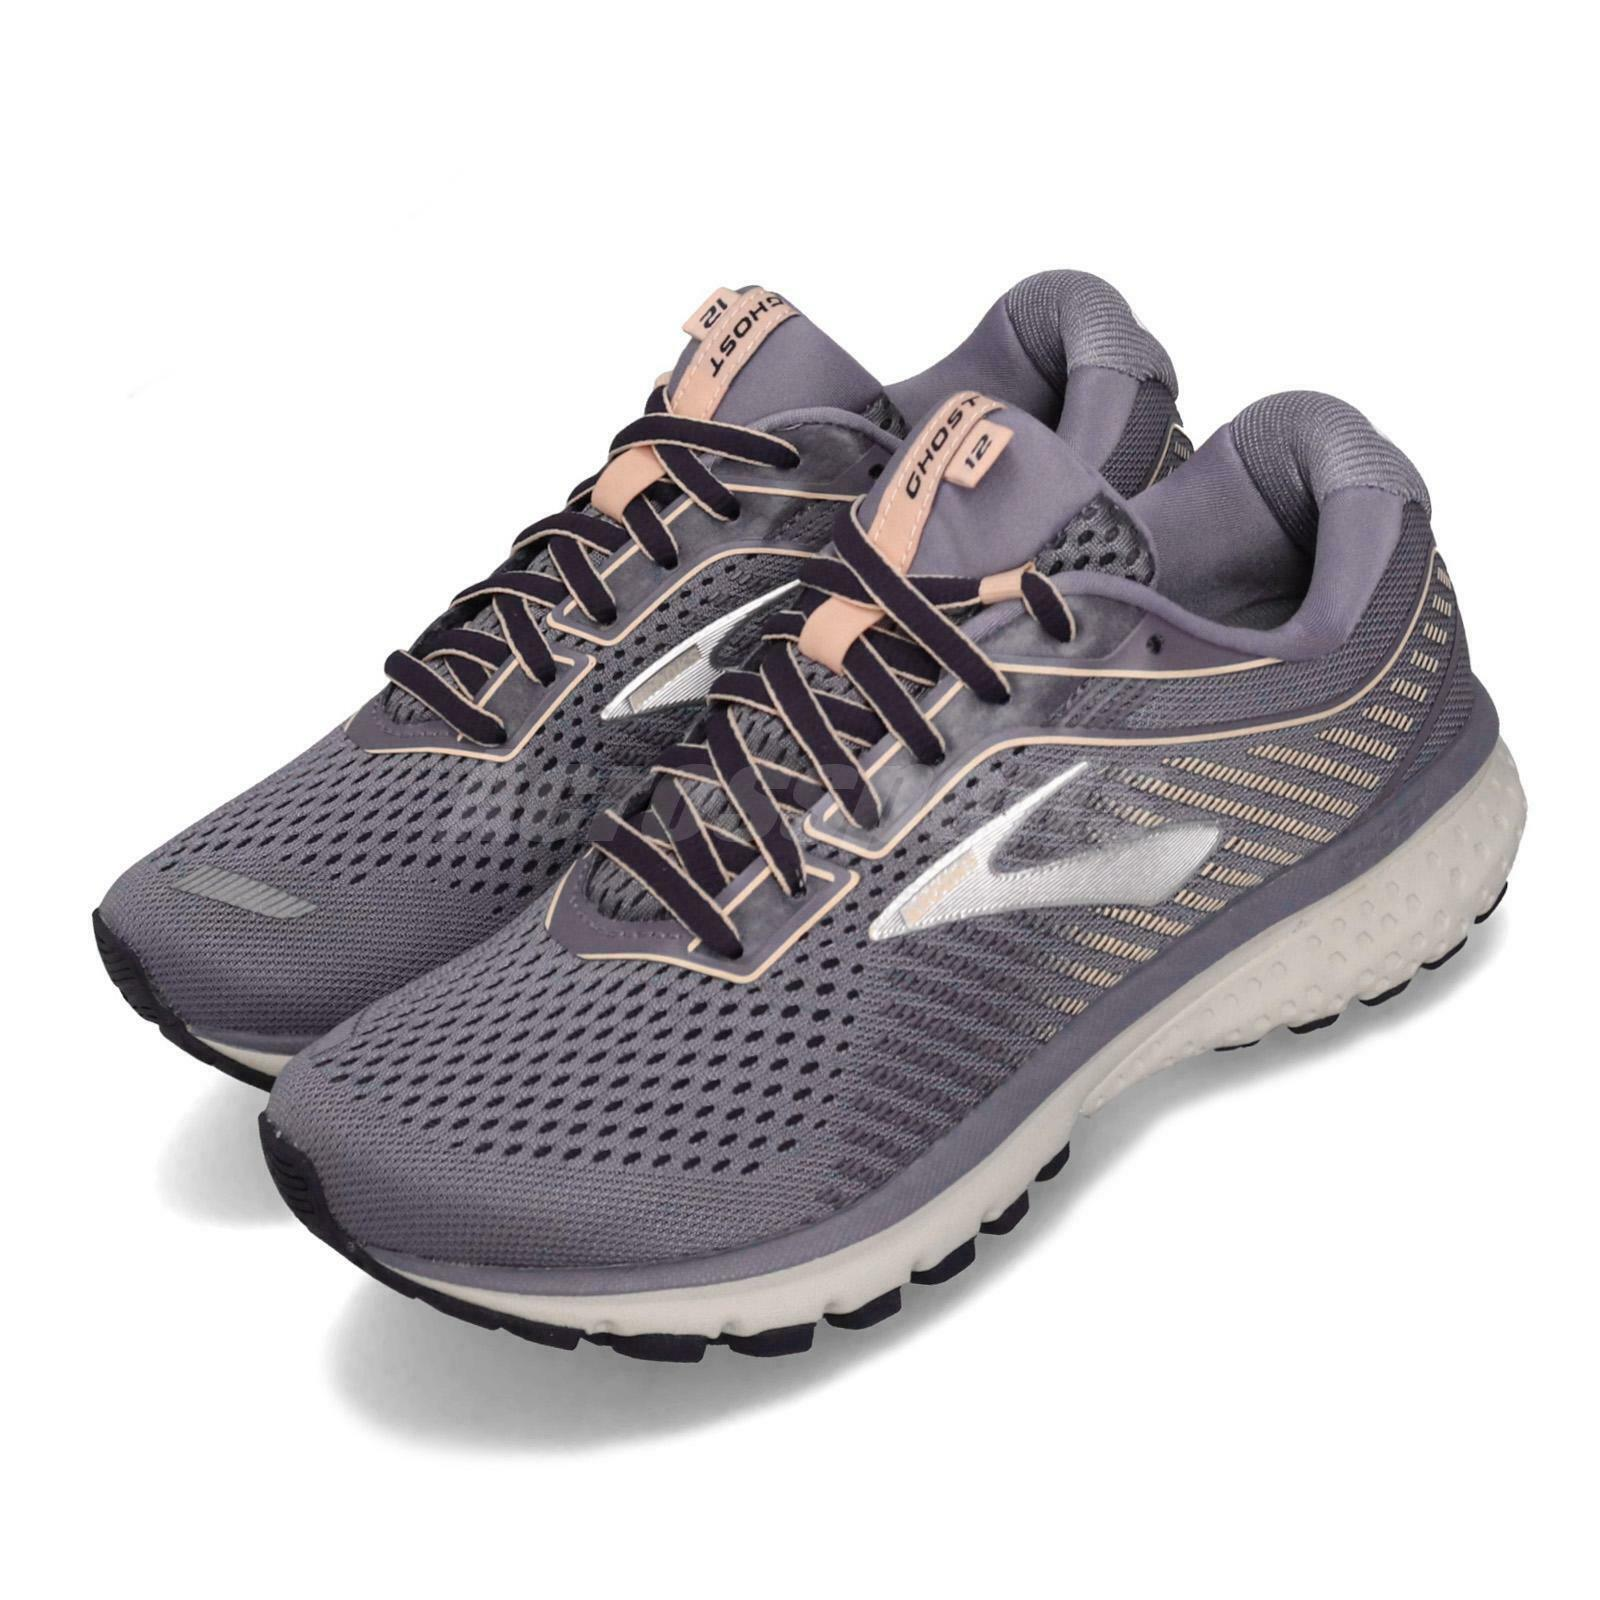 Brooks Ghost 12 Wide lila grau damen Running Training schuhe Turnschuhe 120305 1D